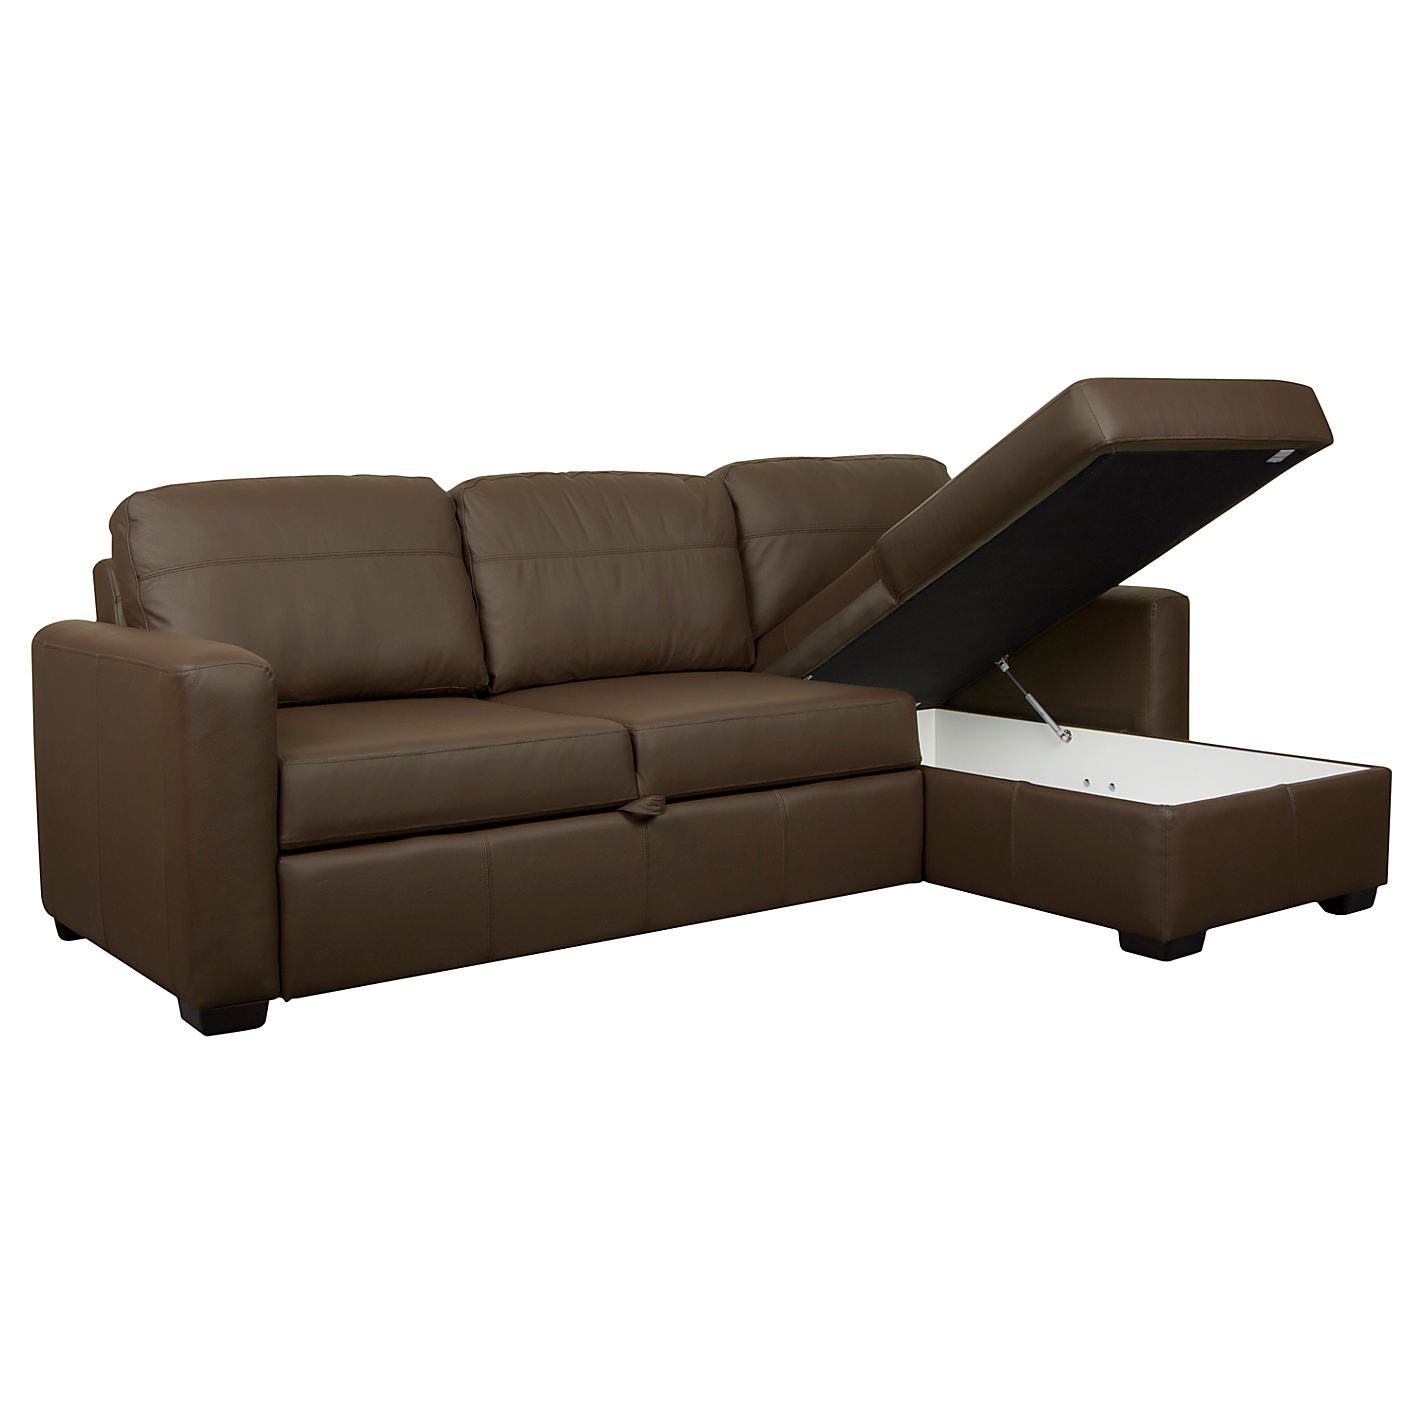 buy john lewis sacha large leather sofa bed with foam mattress